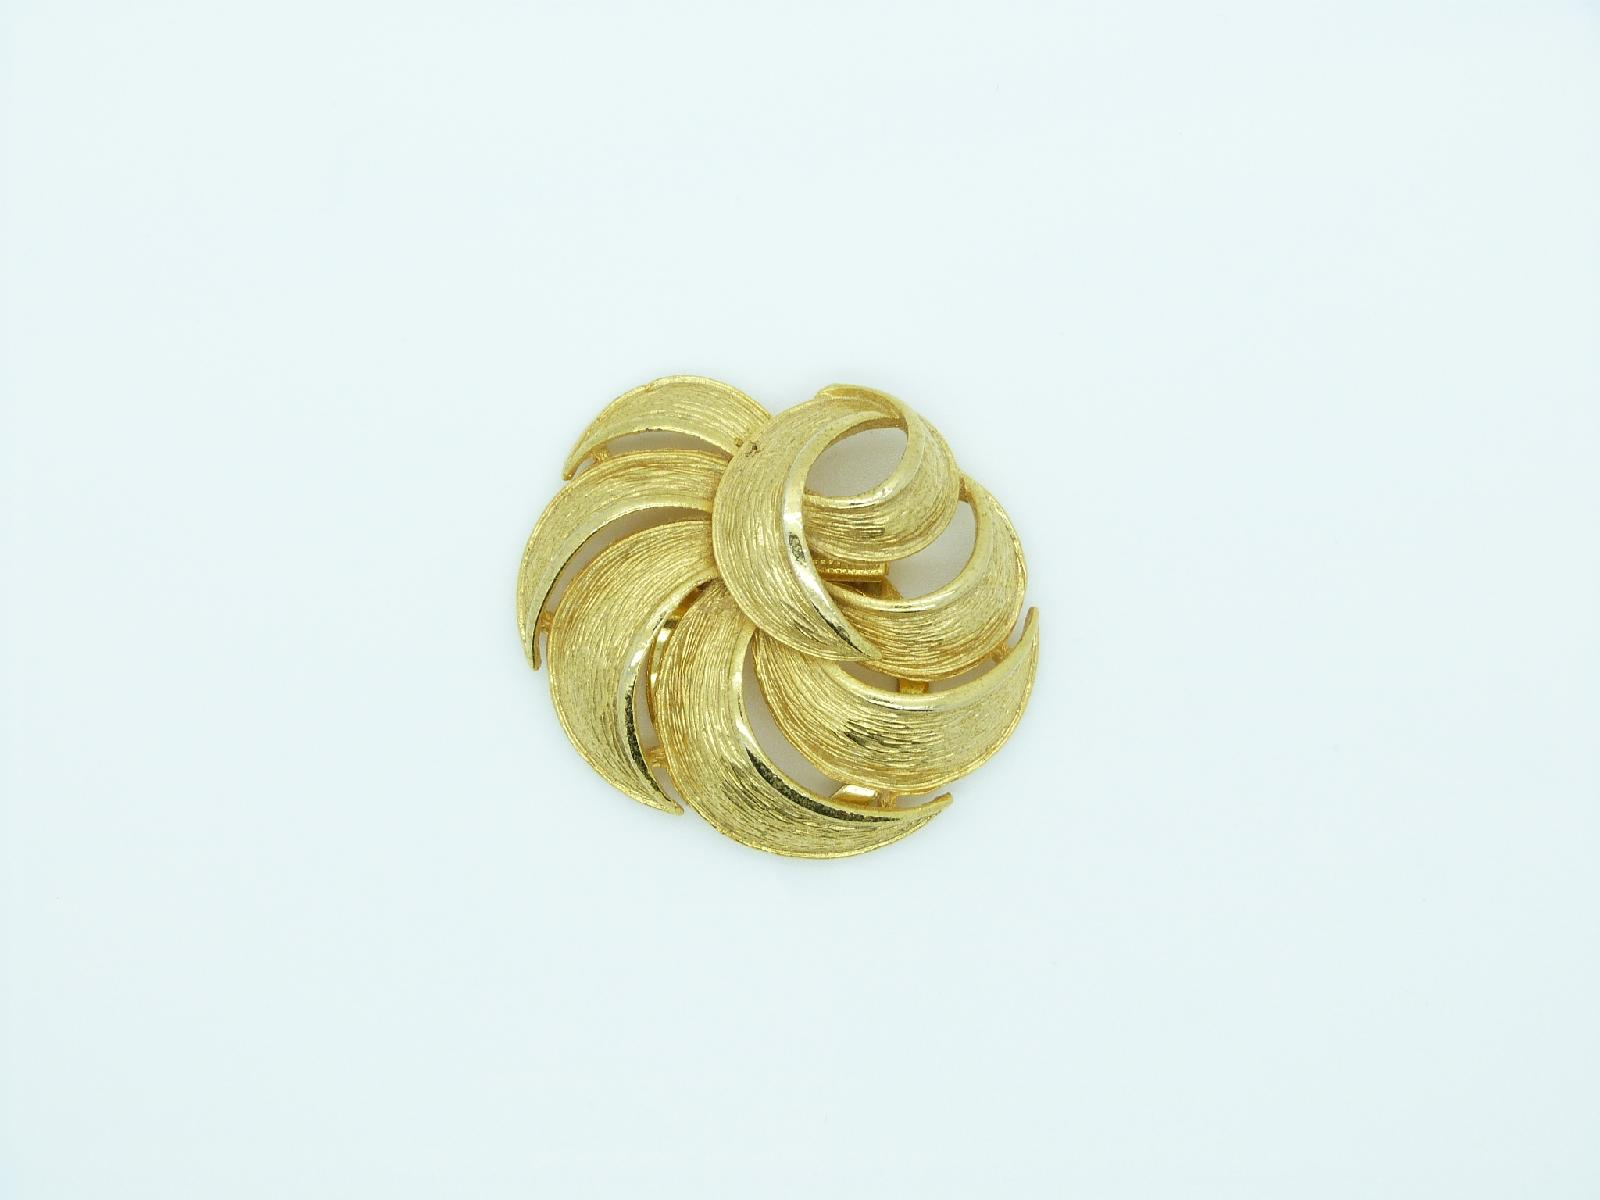 £8.00 - Vintage 60s Large Goldtone Textured Swirl Effect Scarf Clip 5cms